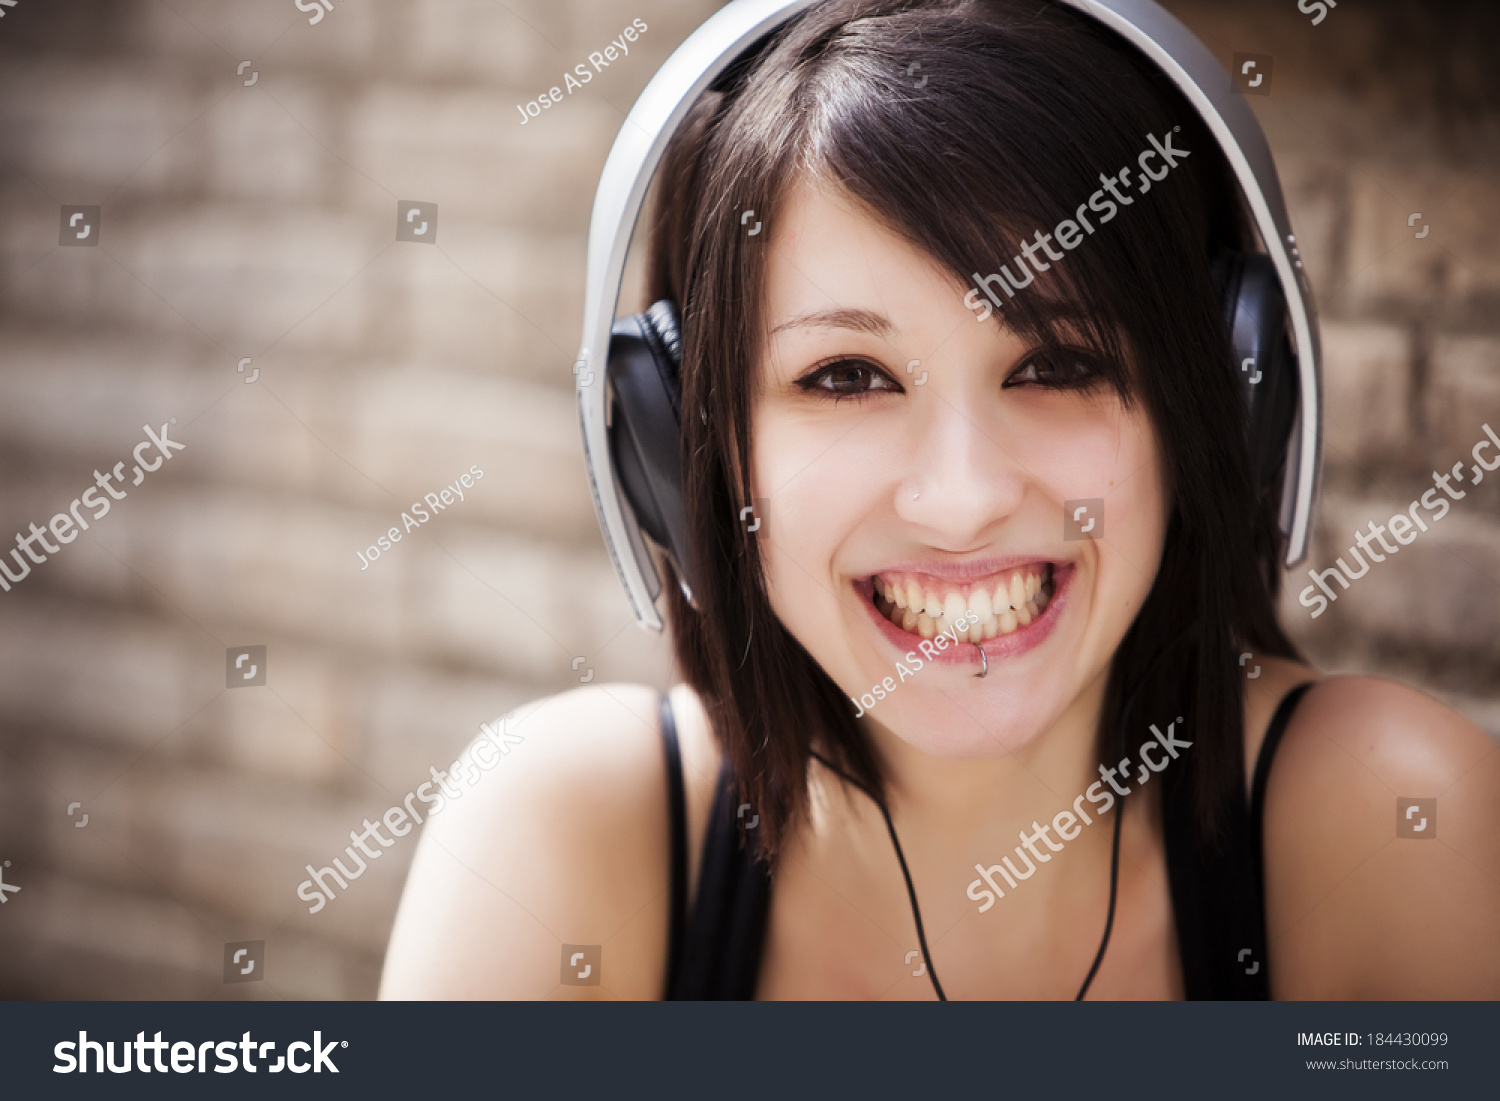 Beautiful Headphones Young Beautiful Girl Portrait Wearing Headphones Stock